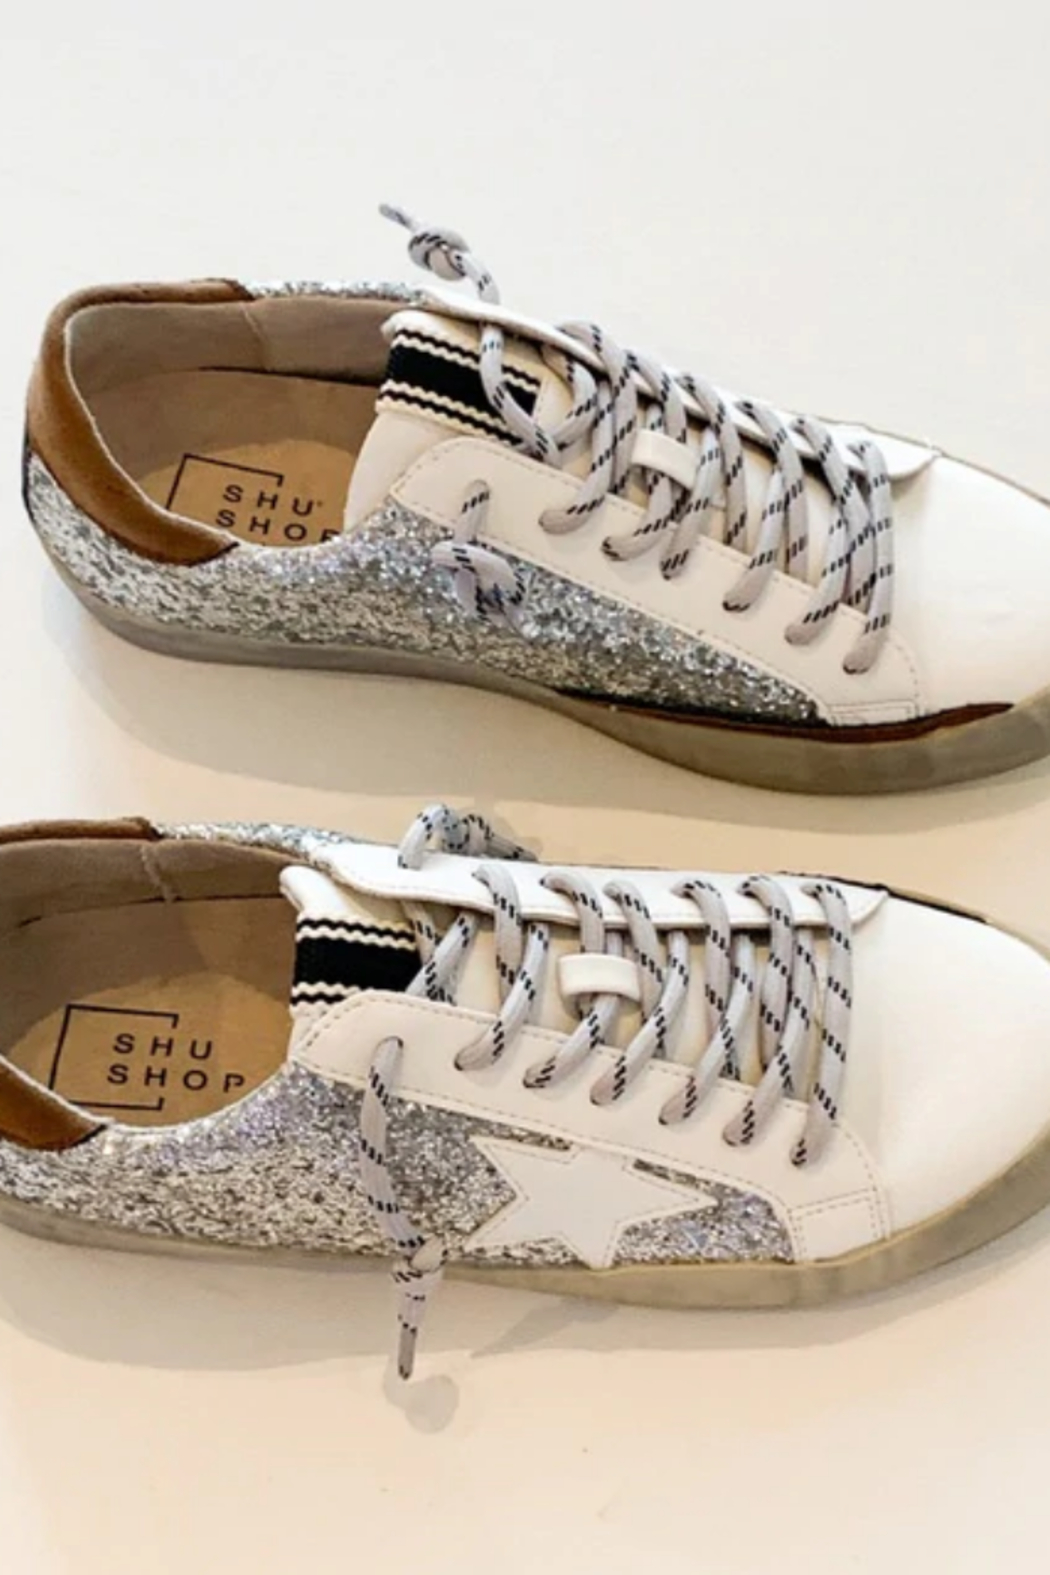 Shu Shop Shoes All Over Sparkle Sneaker - Main Image